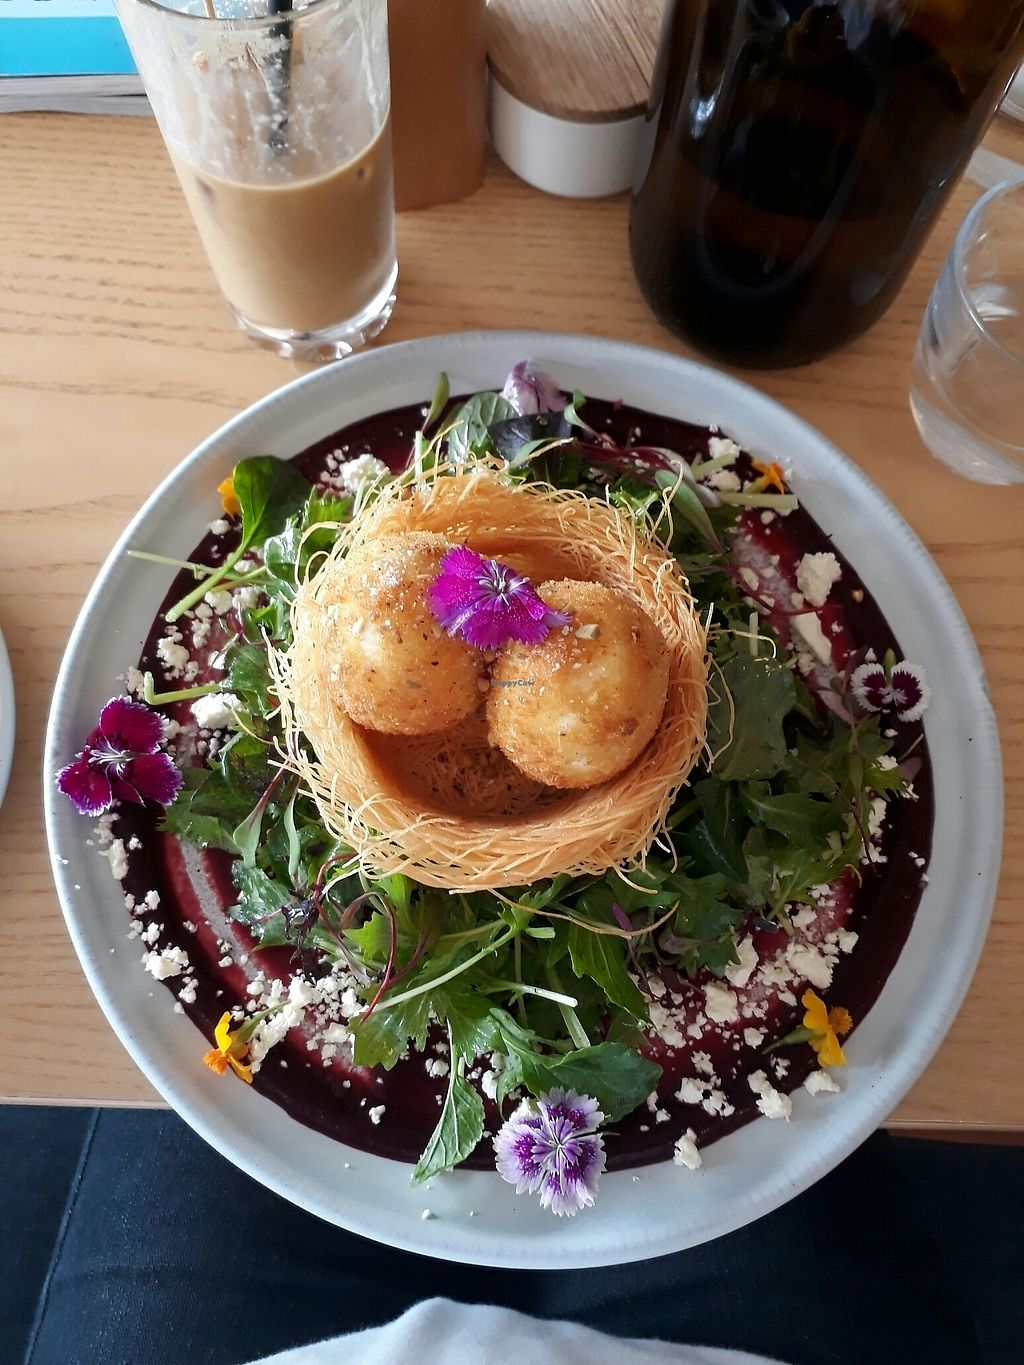 """Photo of Comes and Goes  by <a href=""""/members/profile/HazelTurner"""">HazelTurner</a> <br/>amazing food! <br/> July 12, 2017  - <a href='/contact/abuse/image/86470/279431'>Report</a>"""